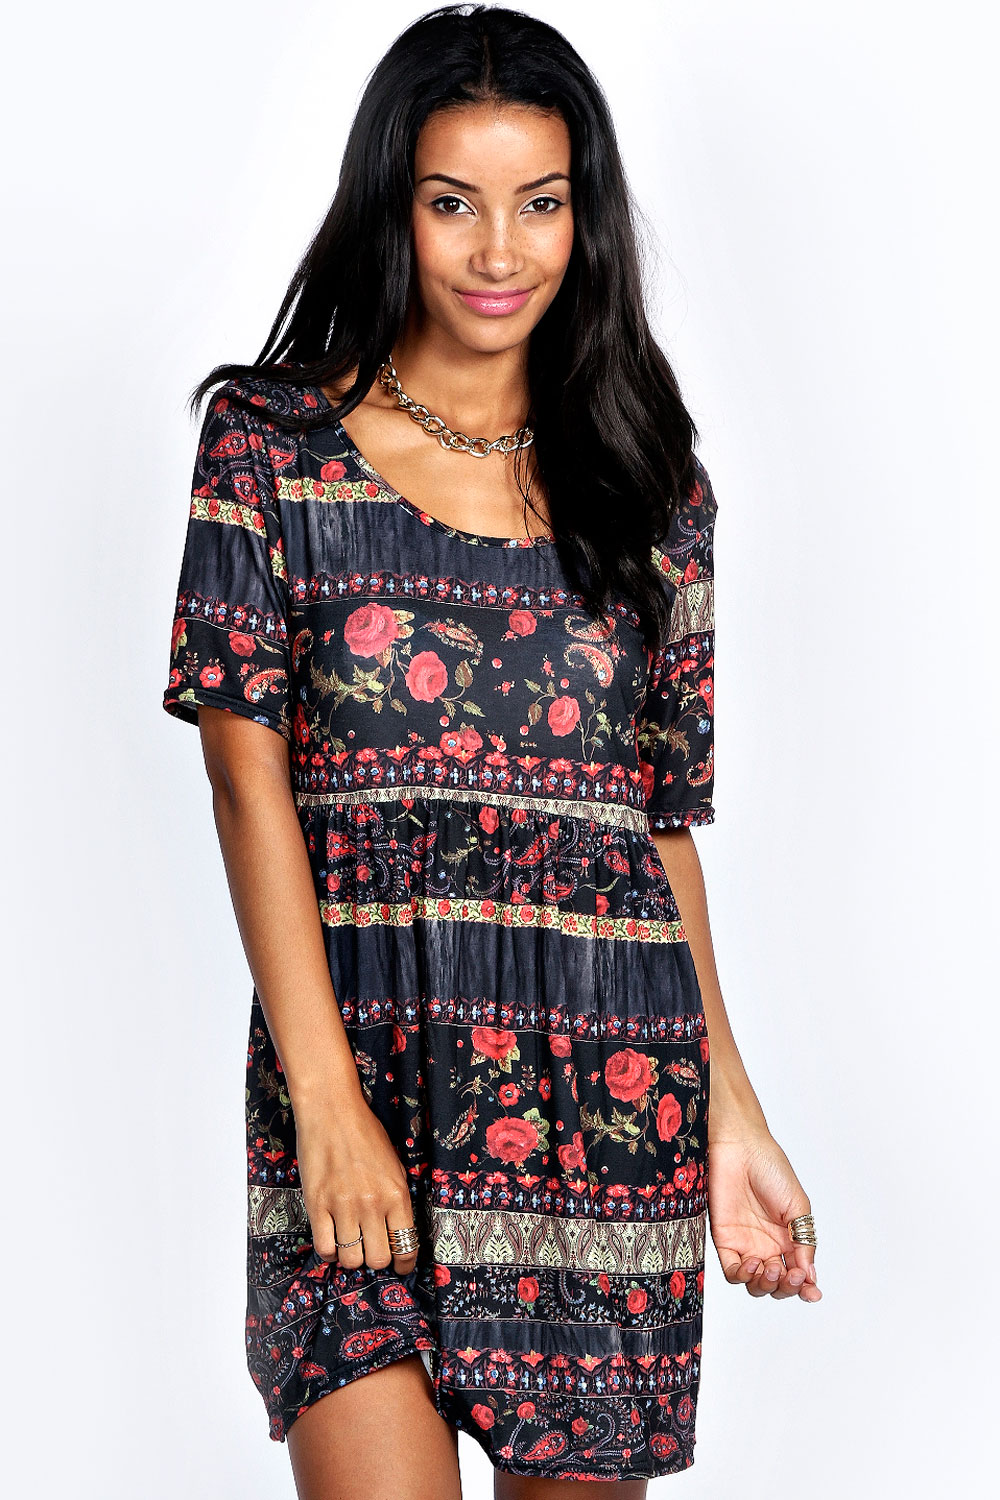 boohoo Neve Printed Keyhole Back Smock Dress - product image